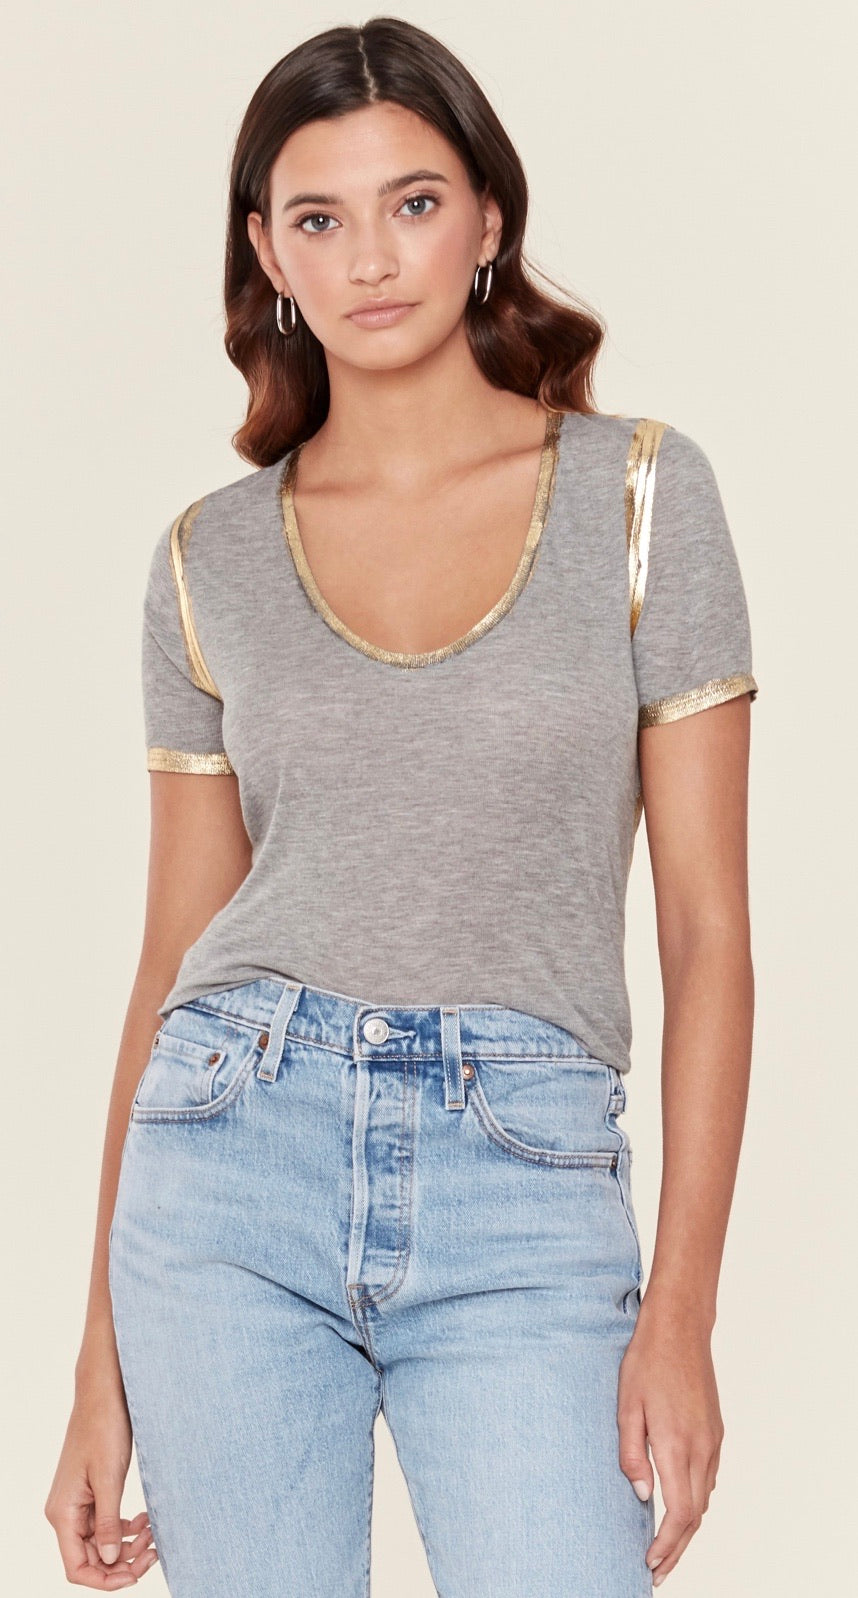 Zadig & Voltaire Tino Gold Spi Vneck tee